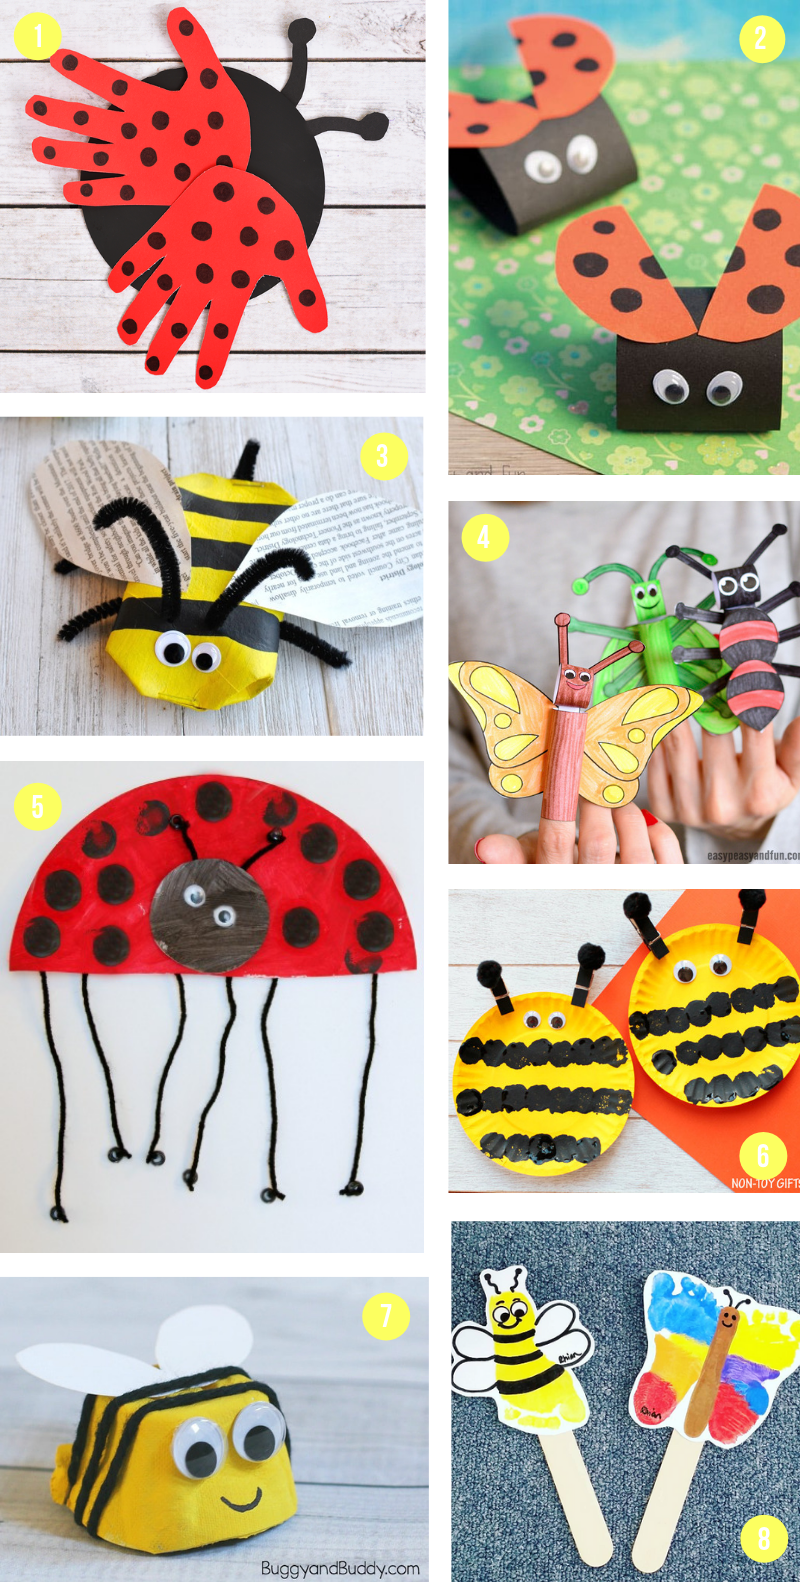 The Epic Collection Of Spring Crafts For Kids - All The Best Art Projects & Activities To Celebrate The Season -   16 diy projects For Mom kids ideas